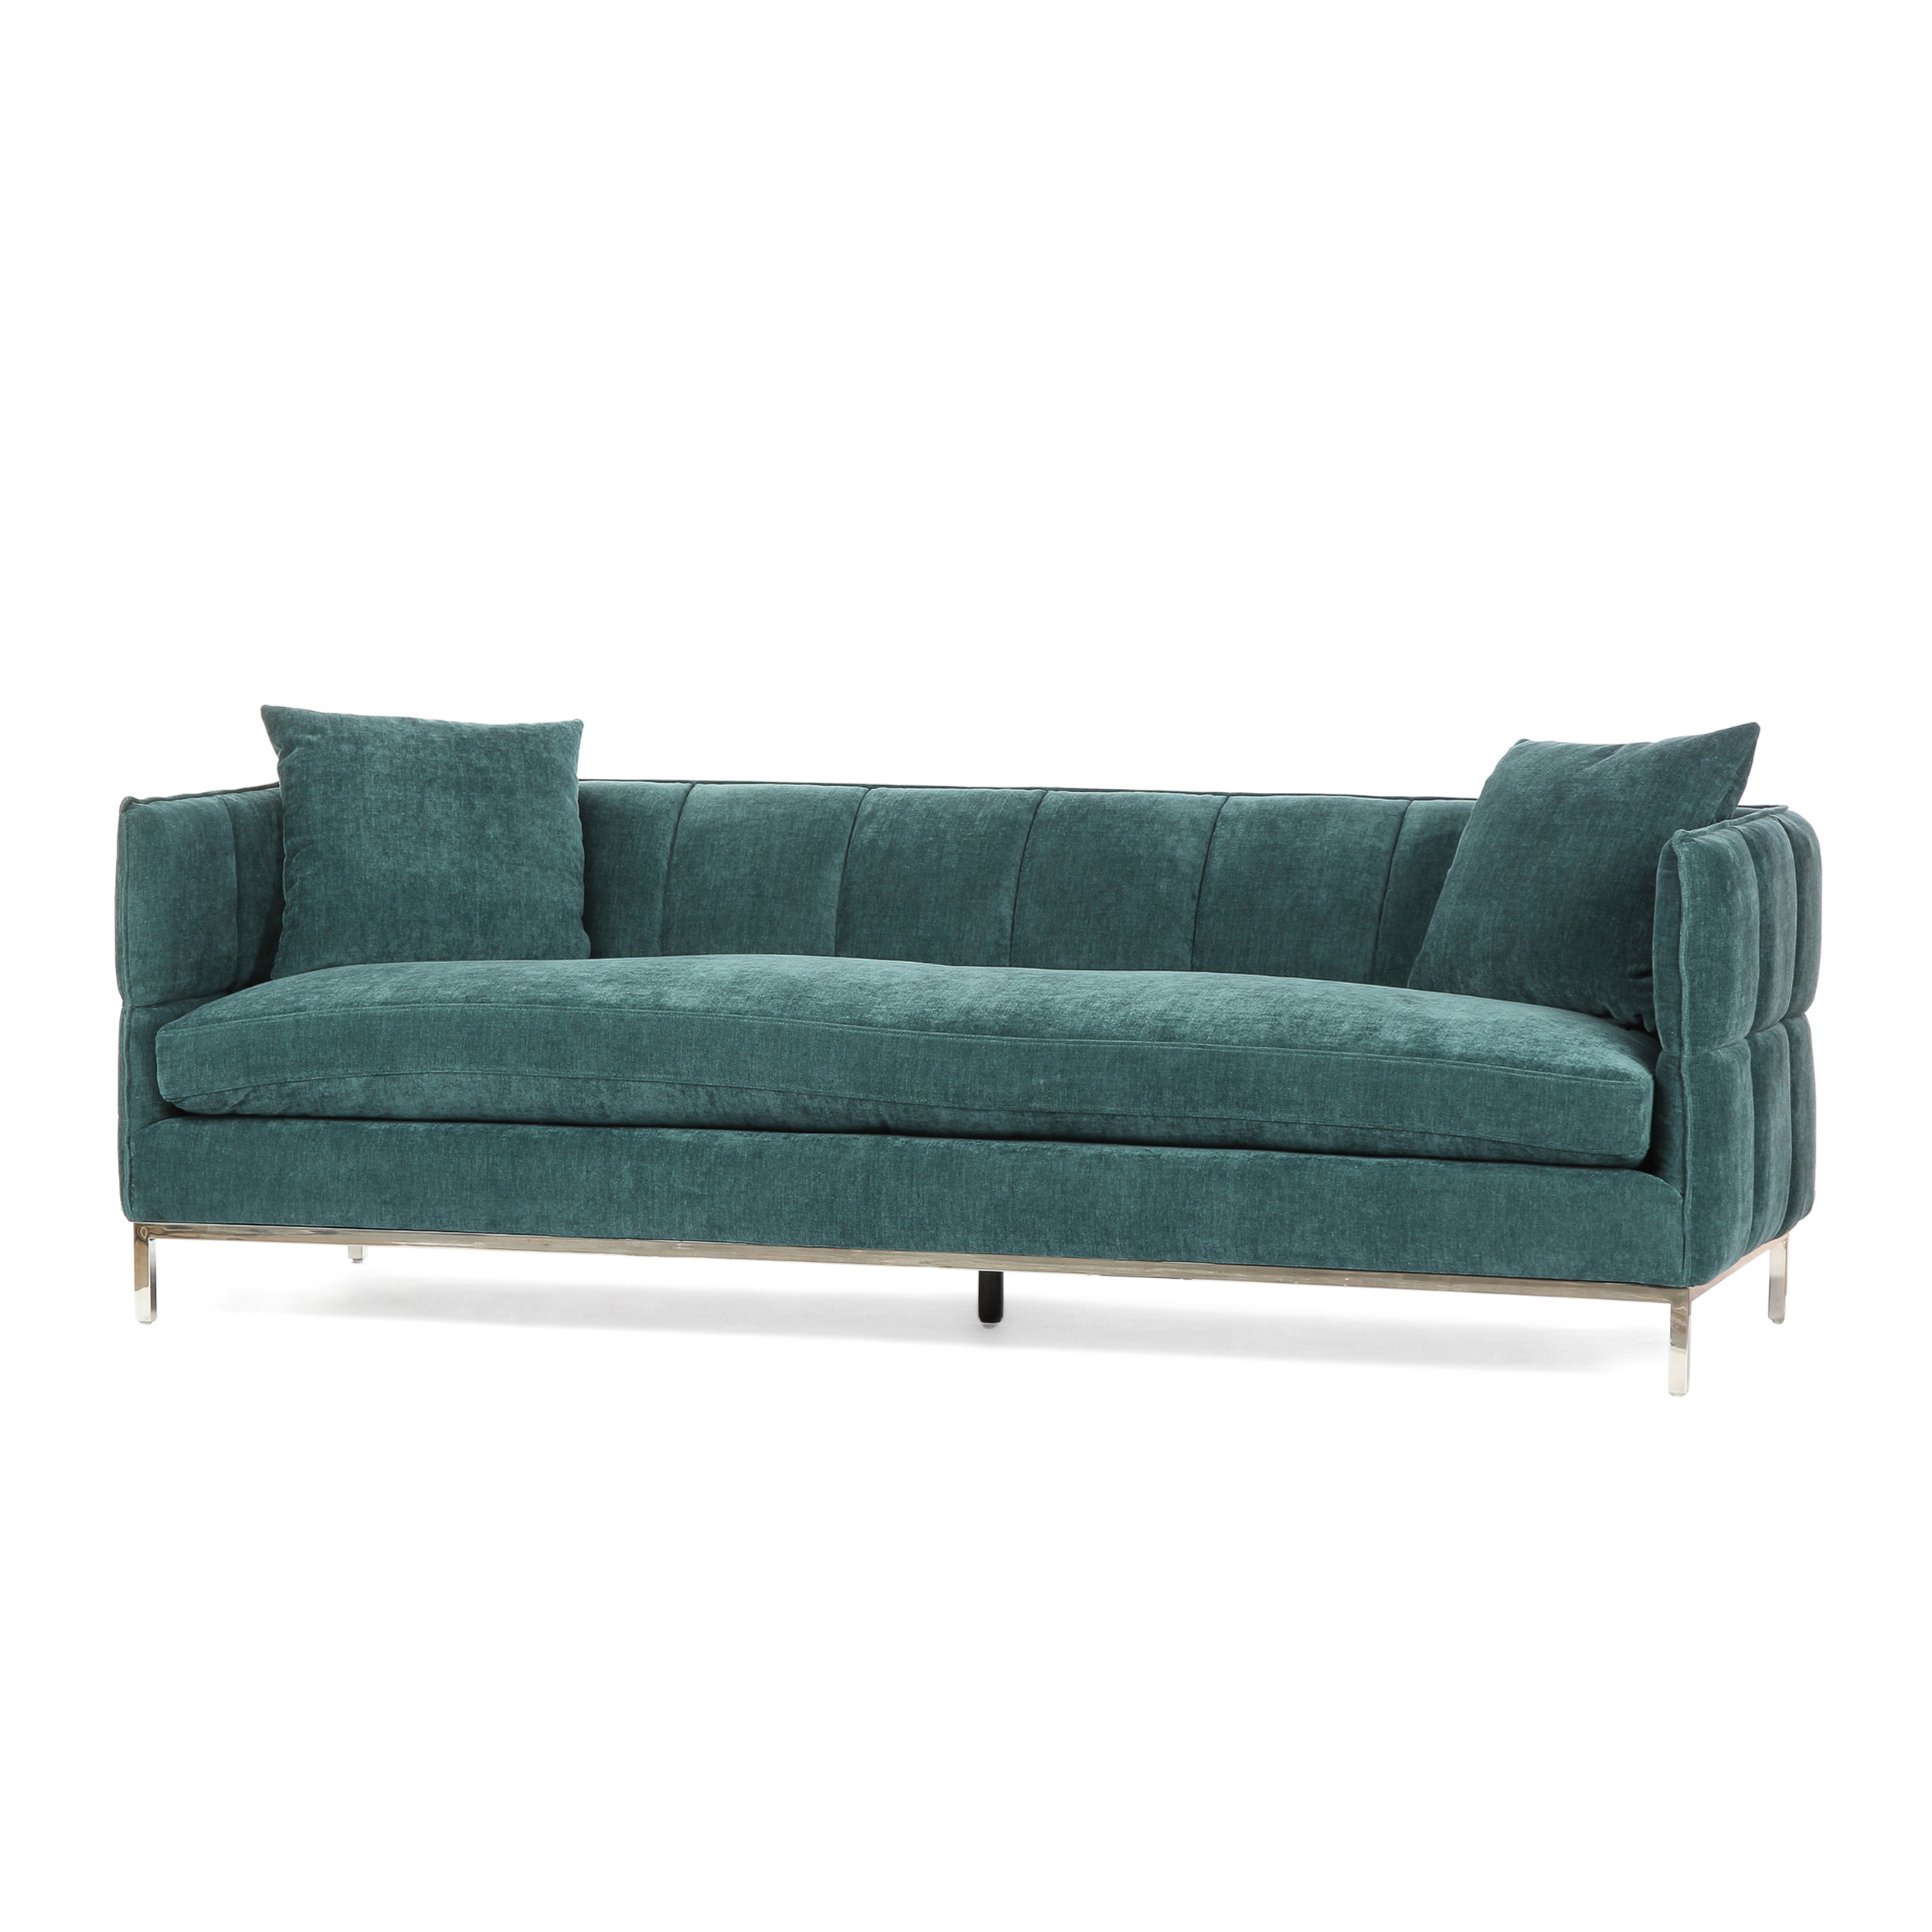 Диван FS030-30 Casper Sofa the cosmo cosmo 30